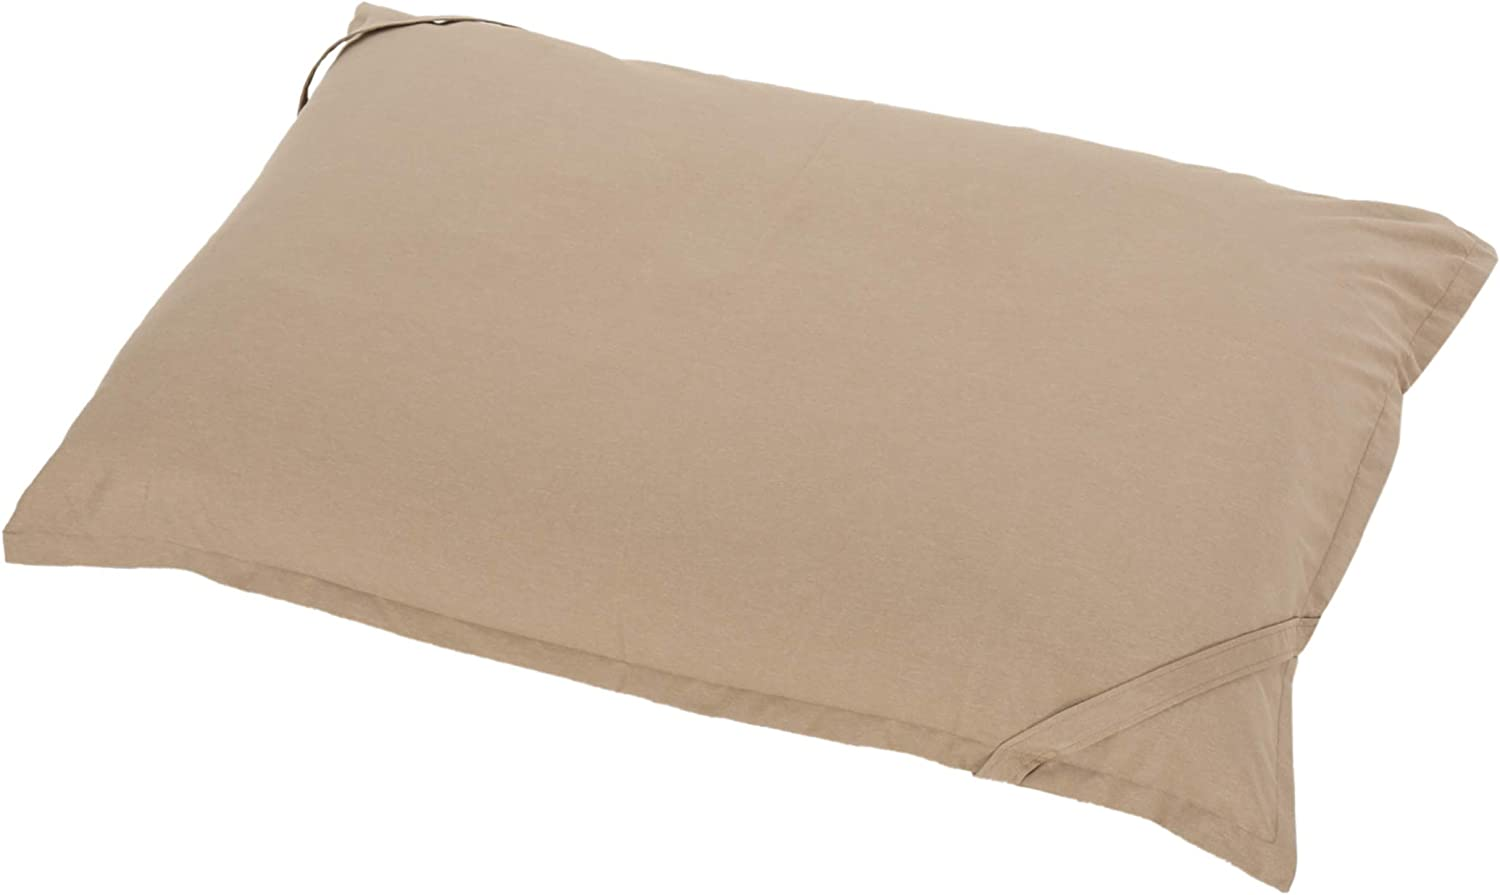 Christopher Knight Home Renata Indoor Water Resistant 5.5'x4' Lounger Bean Bag, Tuscany